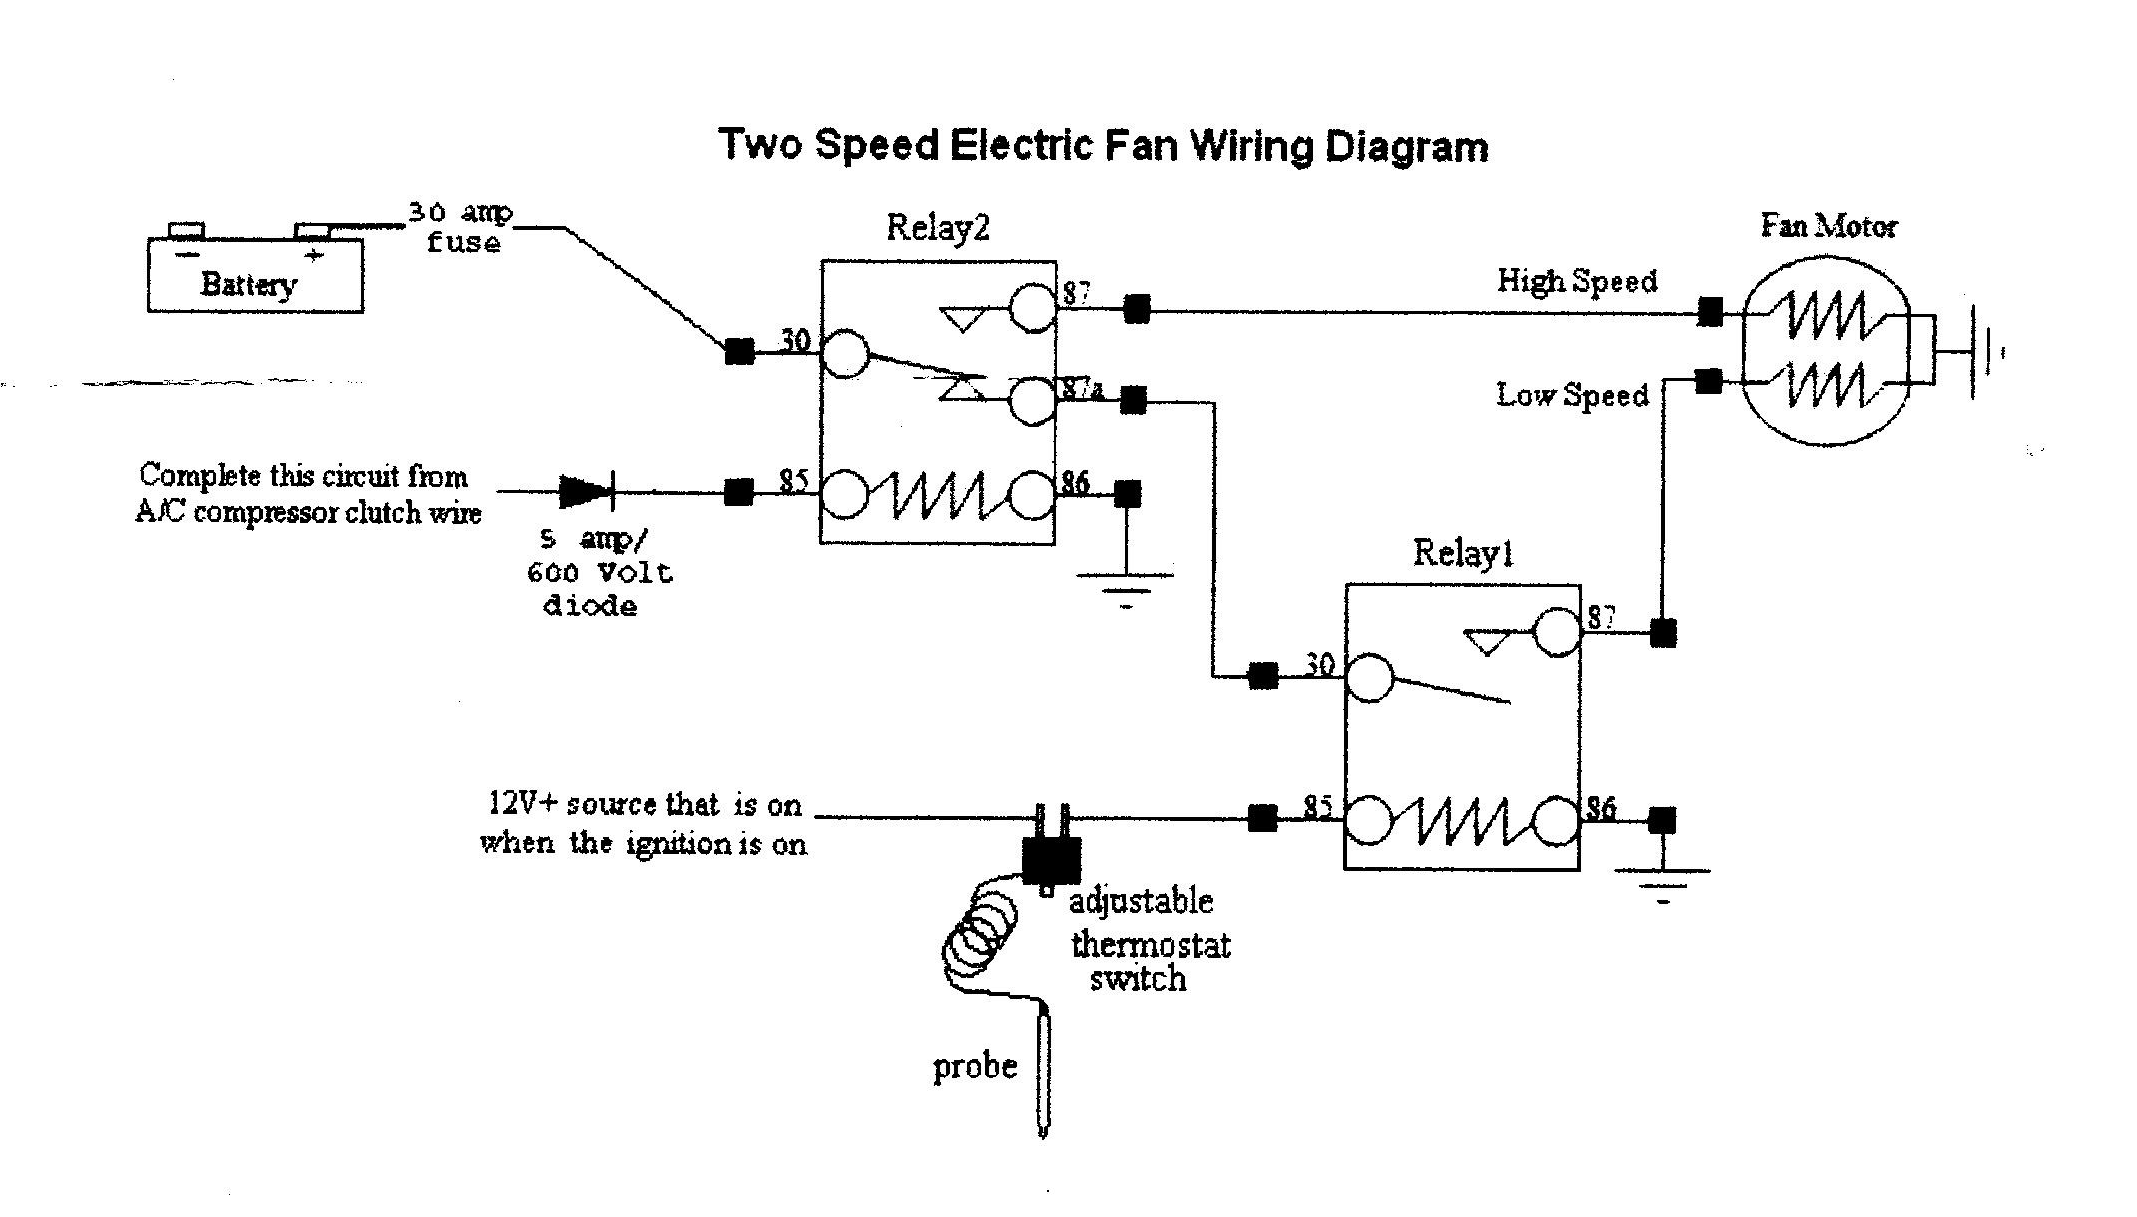 elec fan wiring diagram bmw e30 325i ecu mercury villager electric swap yotatech forums